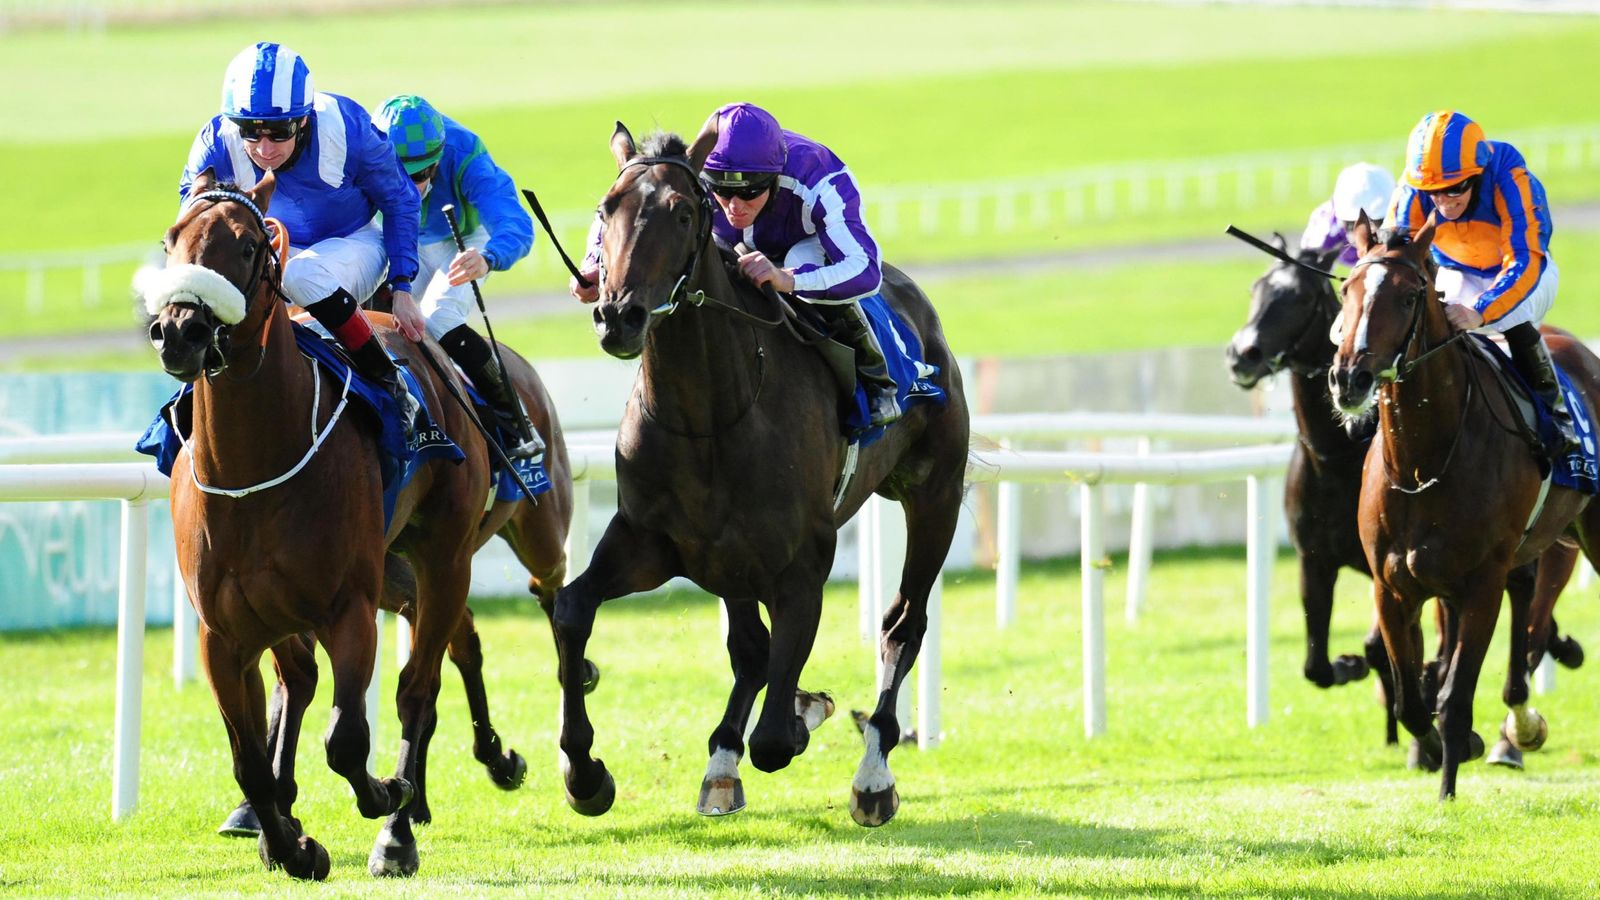 Monaasib makes return to action at Leopardstown